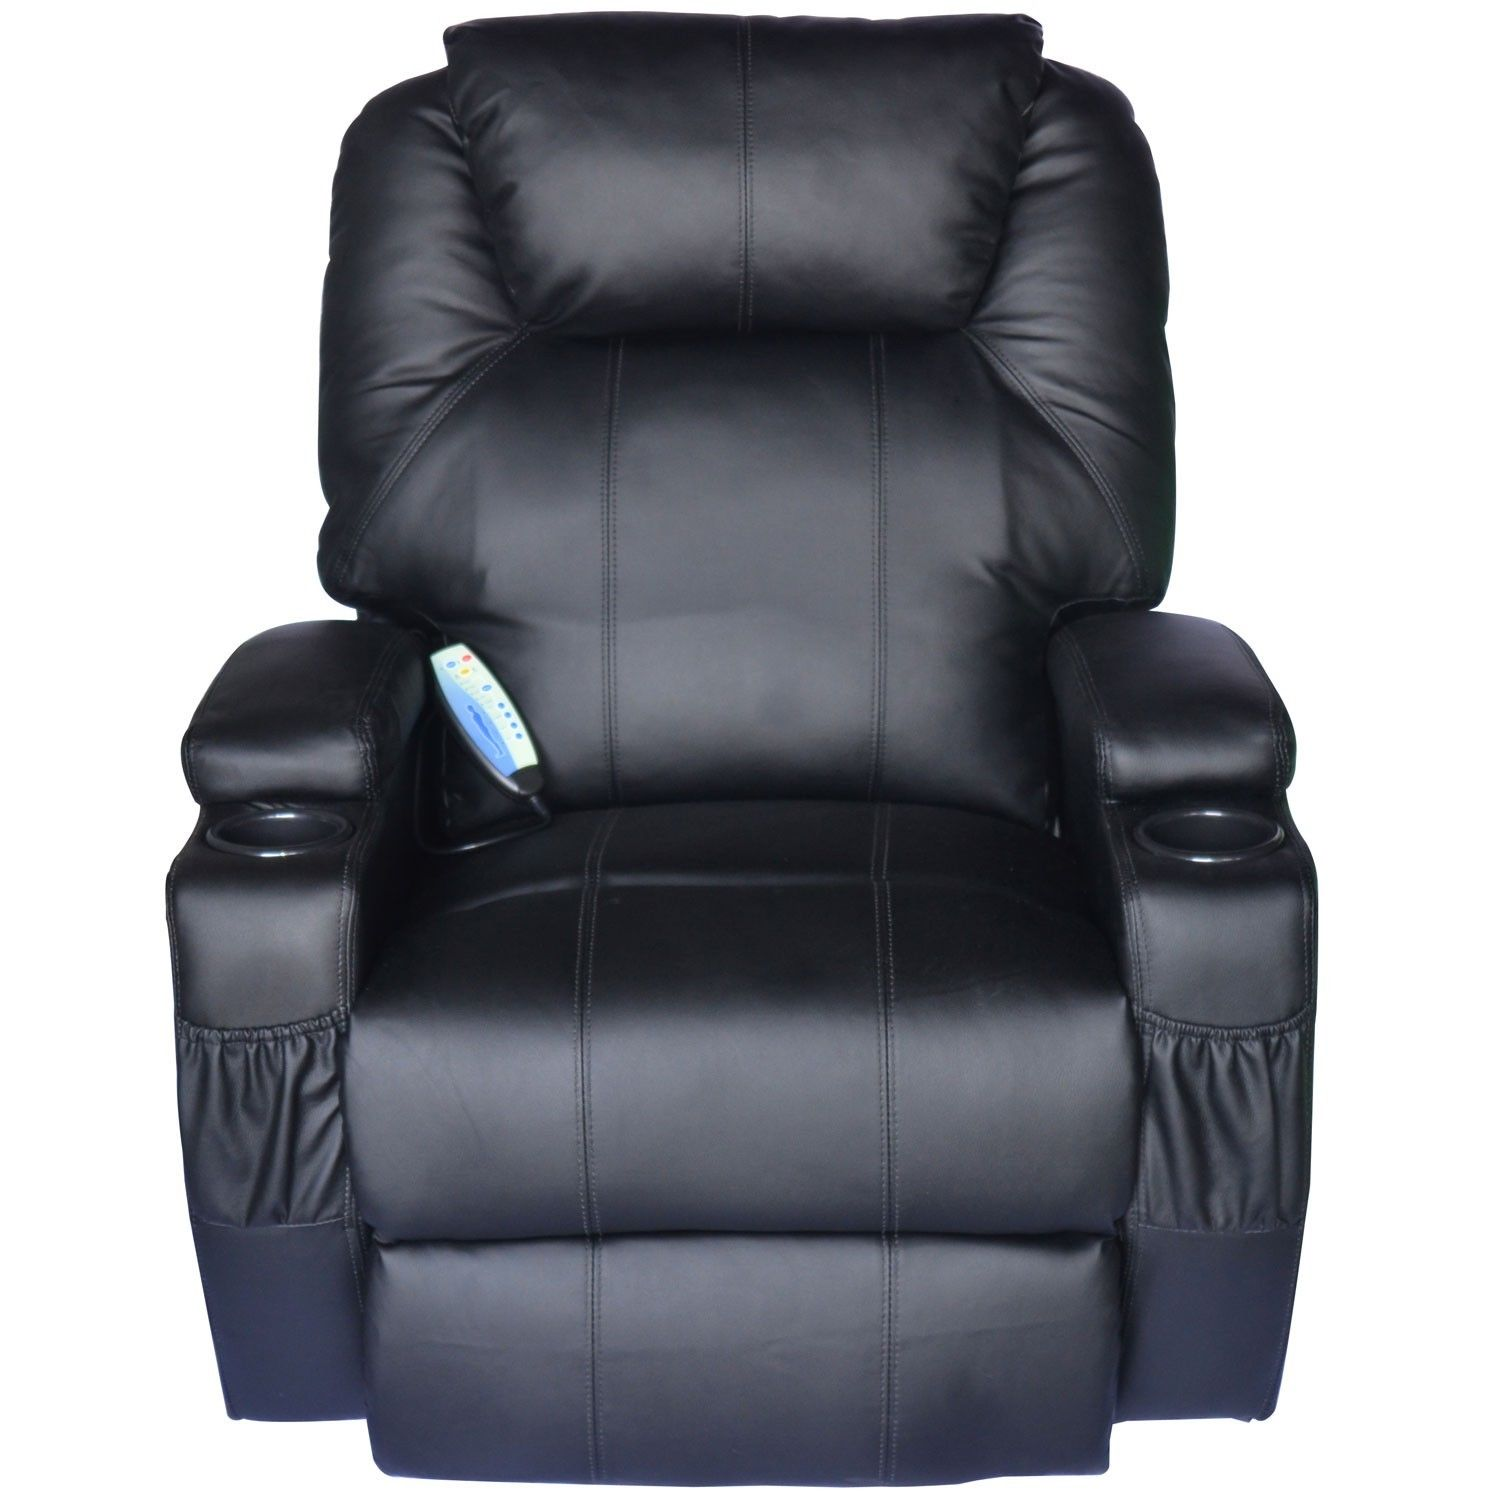 Vibrator Chair Massage Recliner Sofa Leather Vibrating Heated Chair